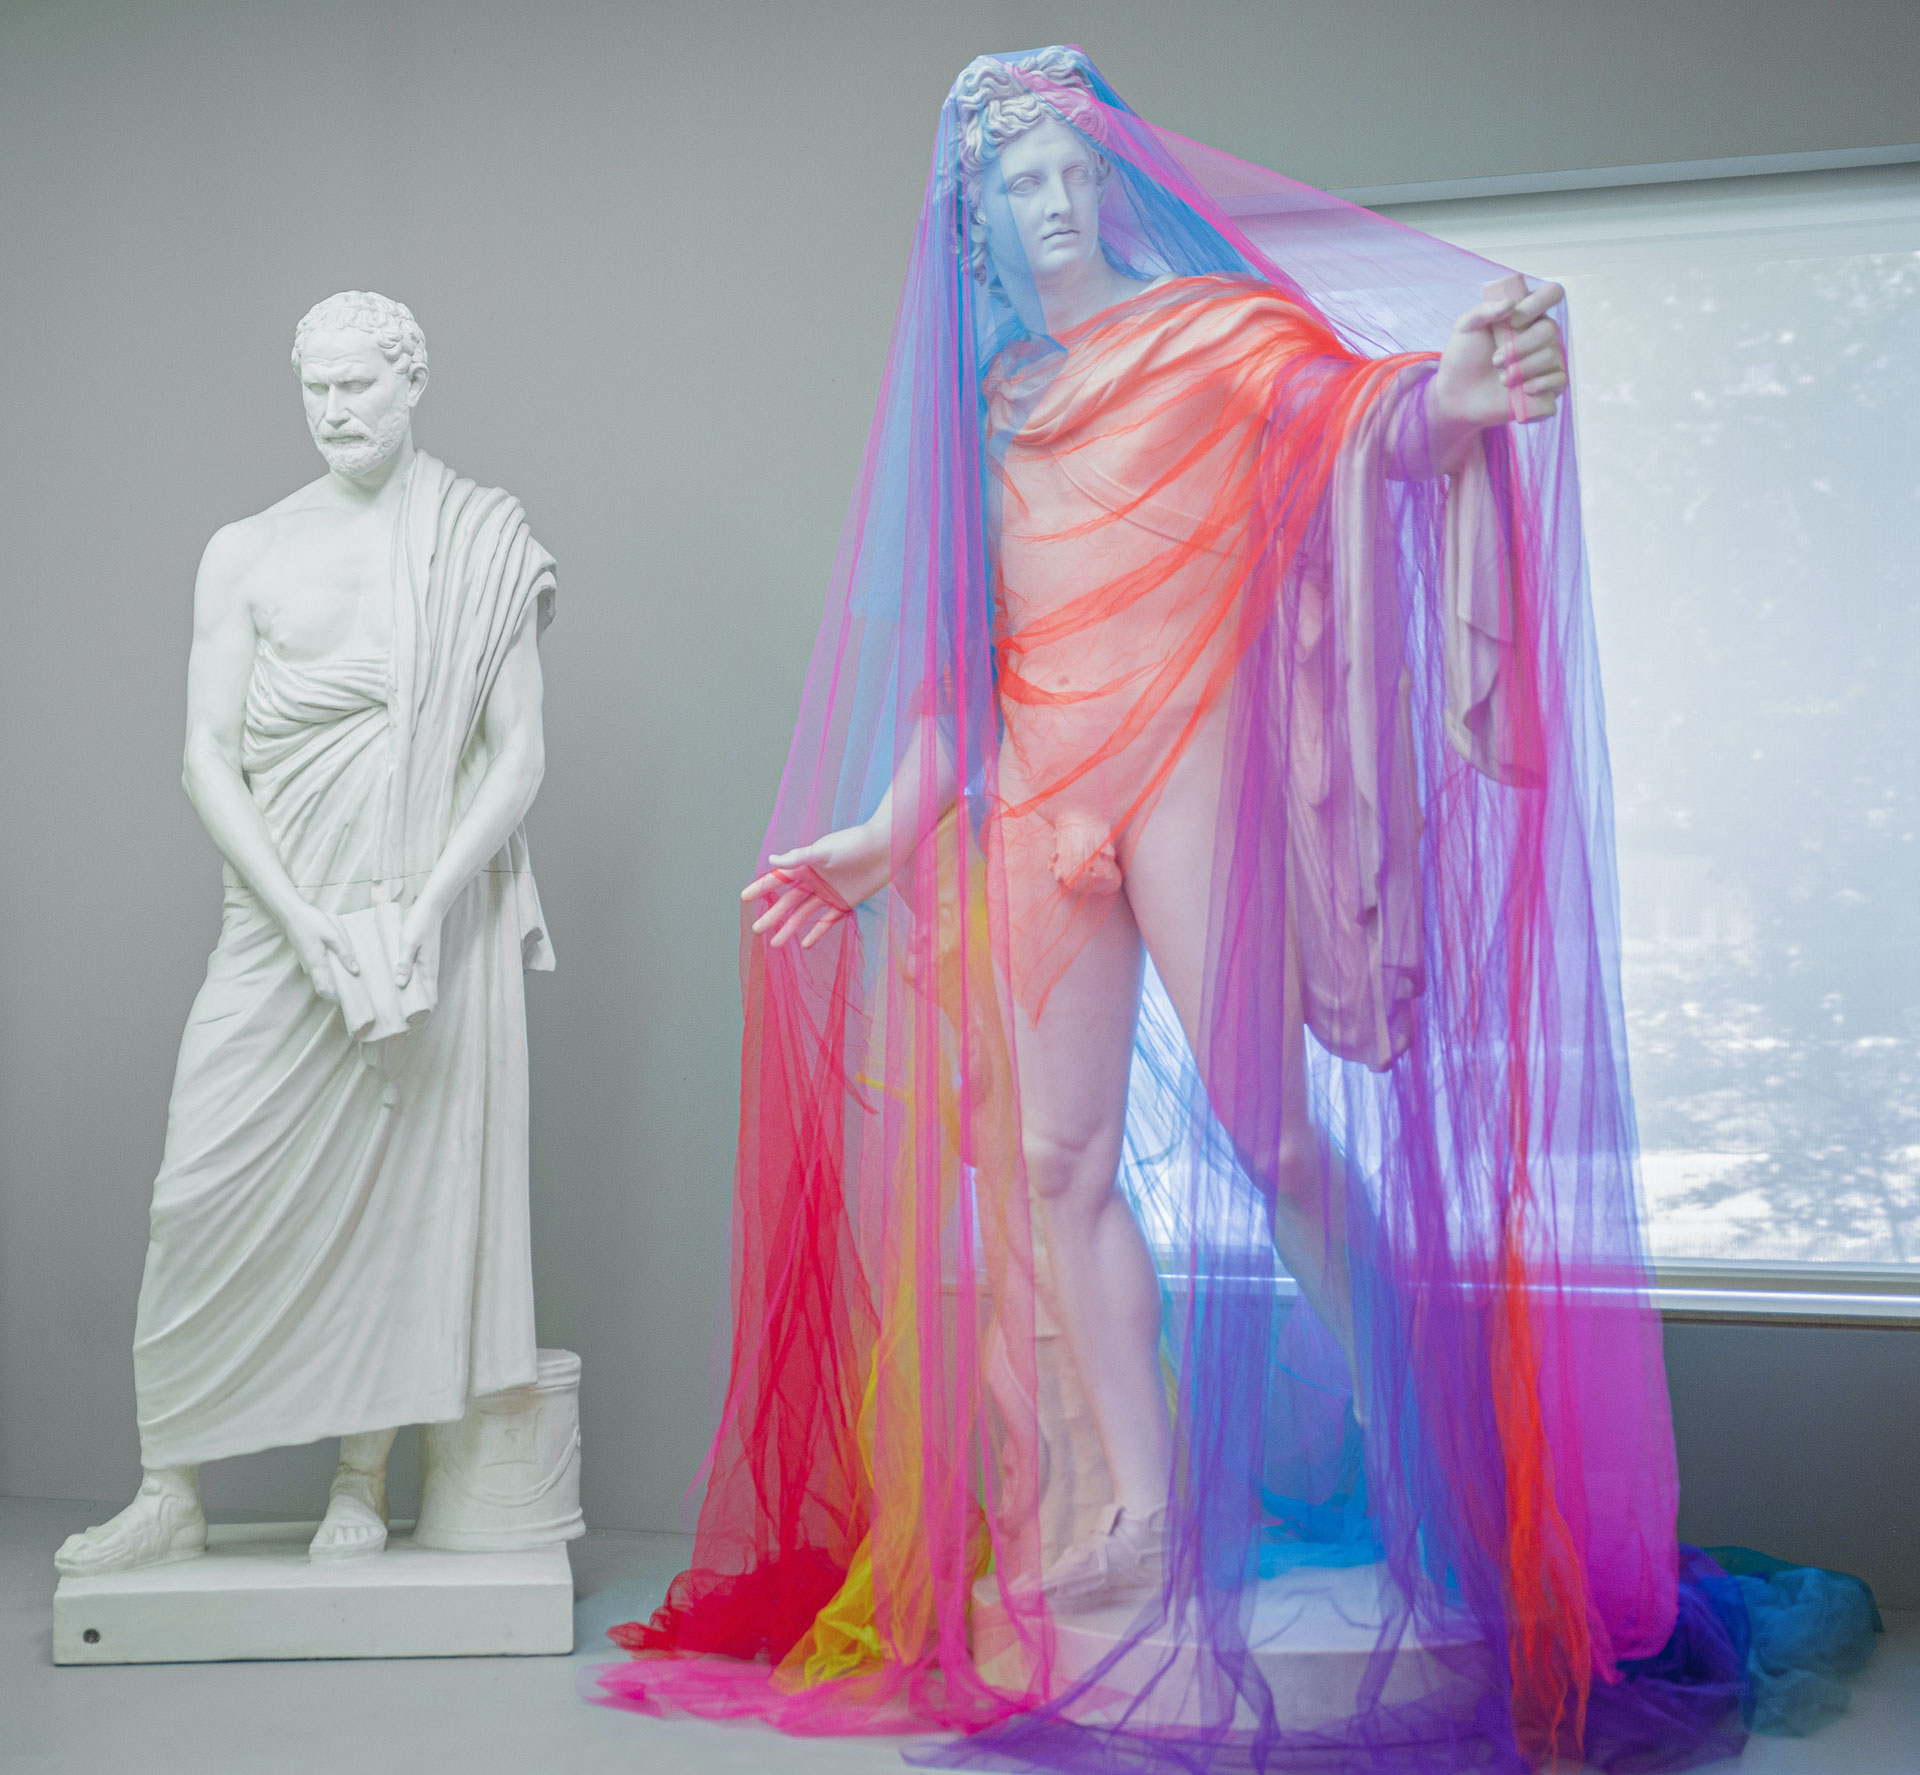 Lily Cox-Richard, intervention in the Osborne Seminar Room, synthetic tulle netting and Apollo Belvedere, 19th-century reproduction, plaster cast from Roman adaptation or copy of a Greek bronze original by Leochares (circa 330 BCE), The William J. Battle Collection of Plaster Casts. Photo by Manny Alcalá.